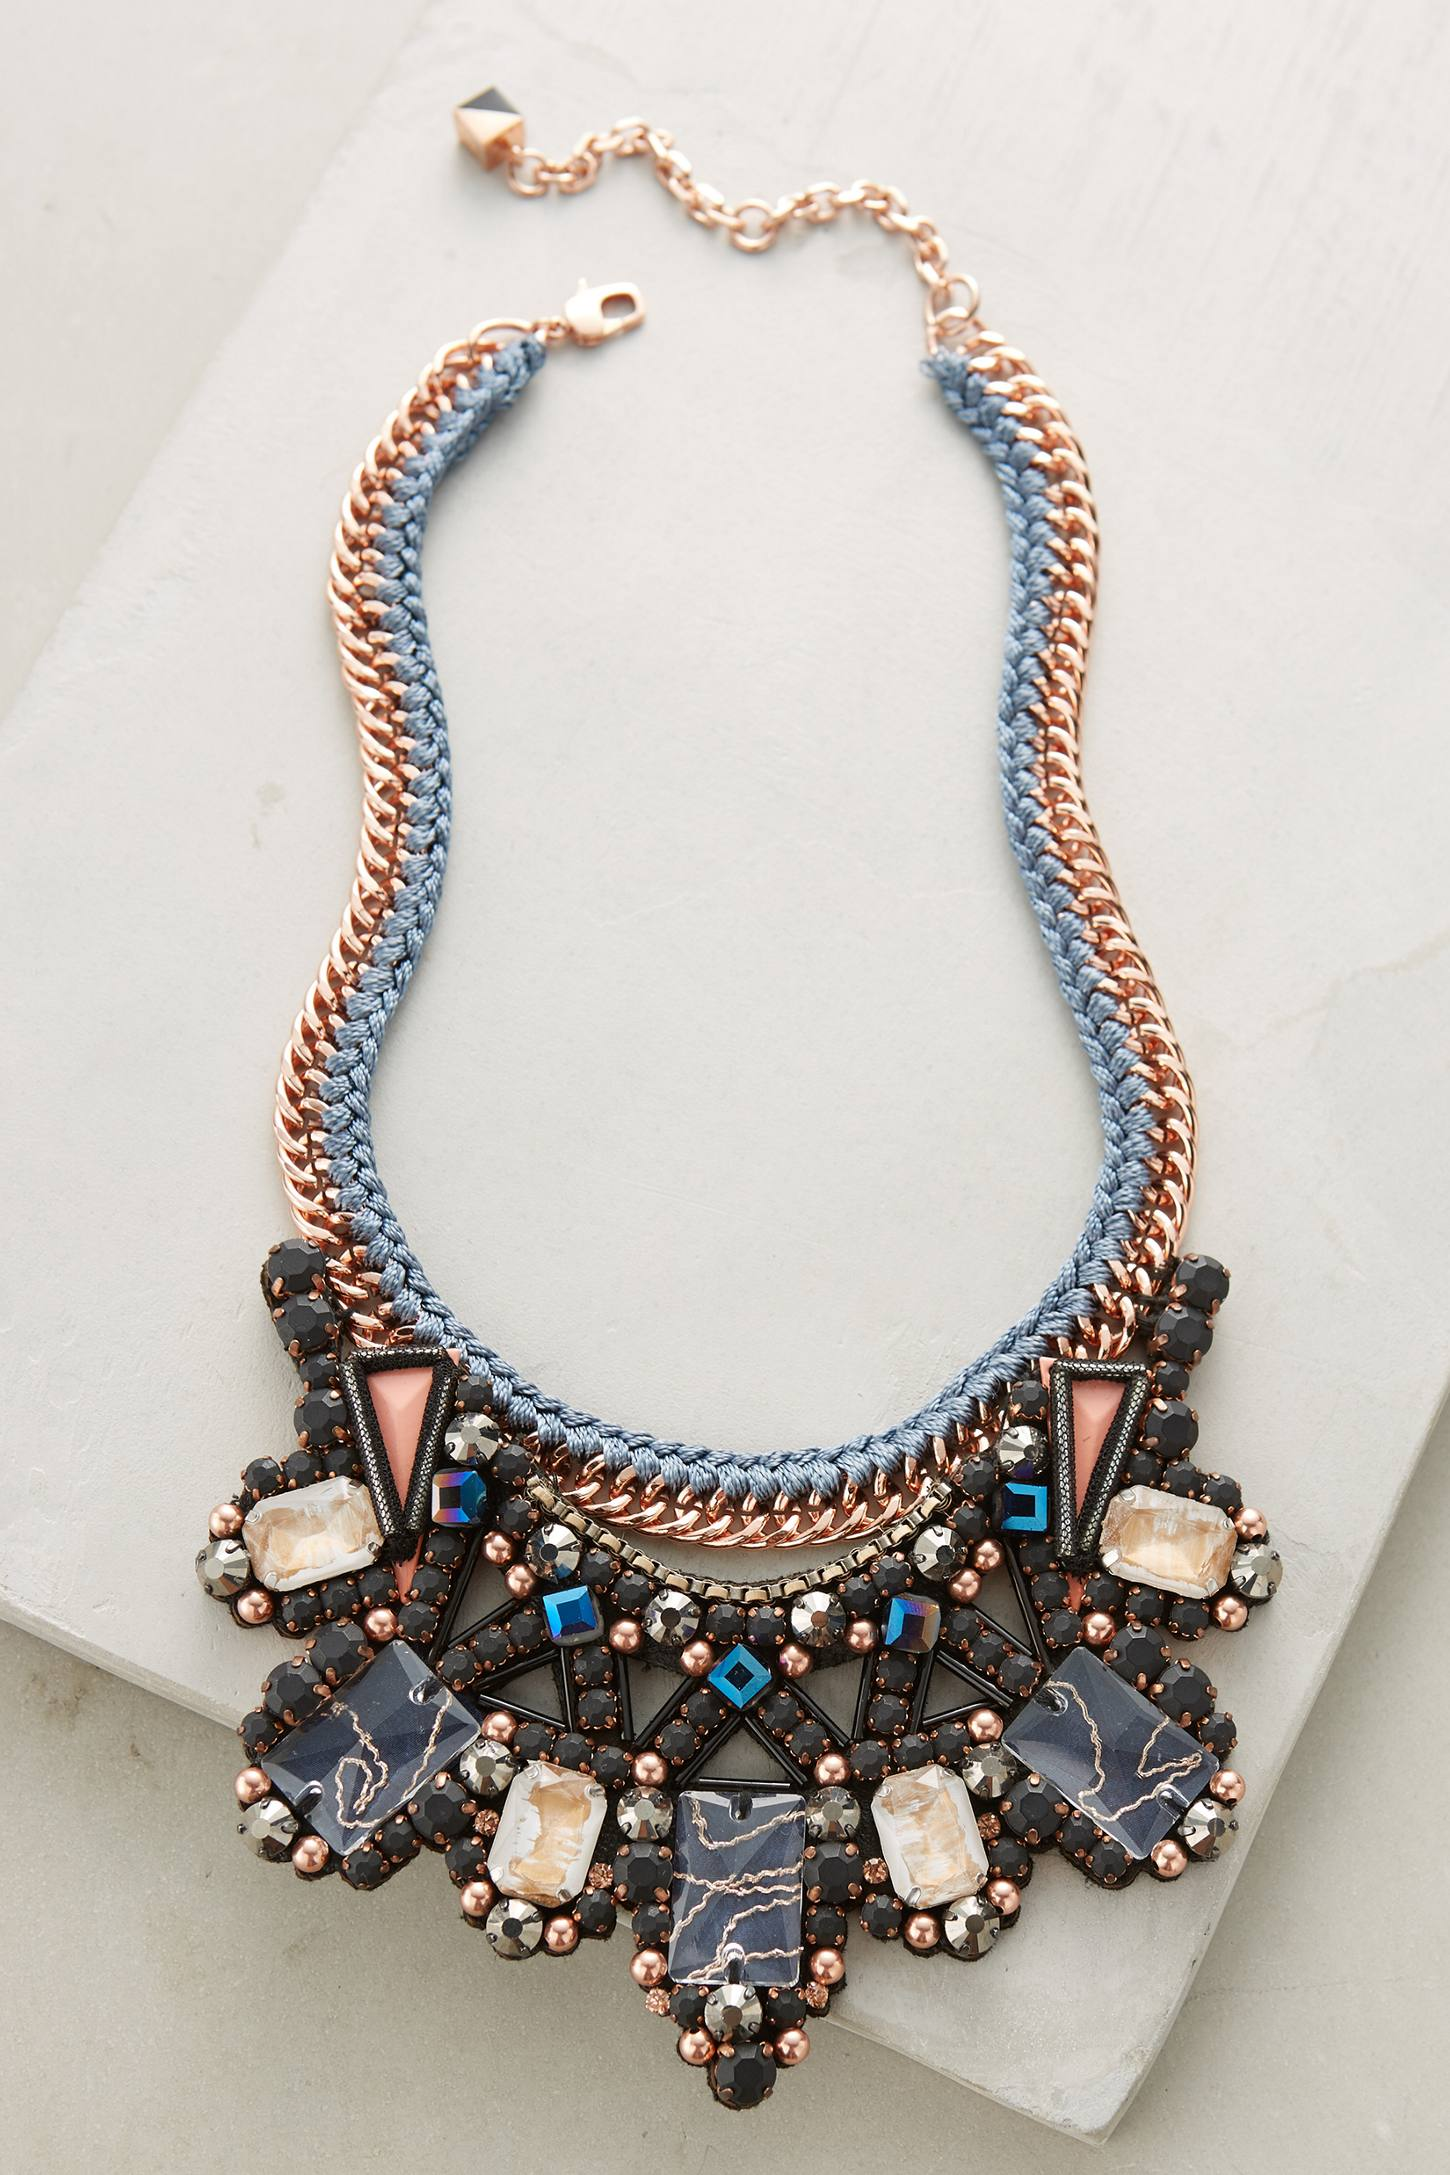 Inove Bib Necklace